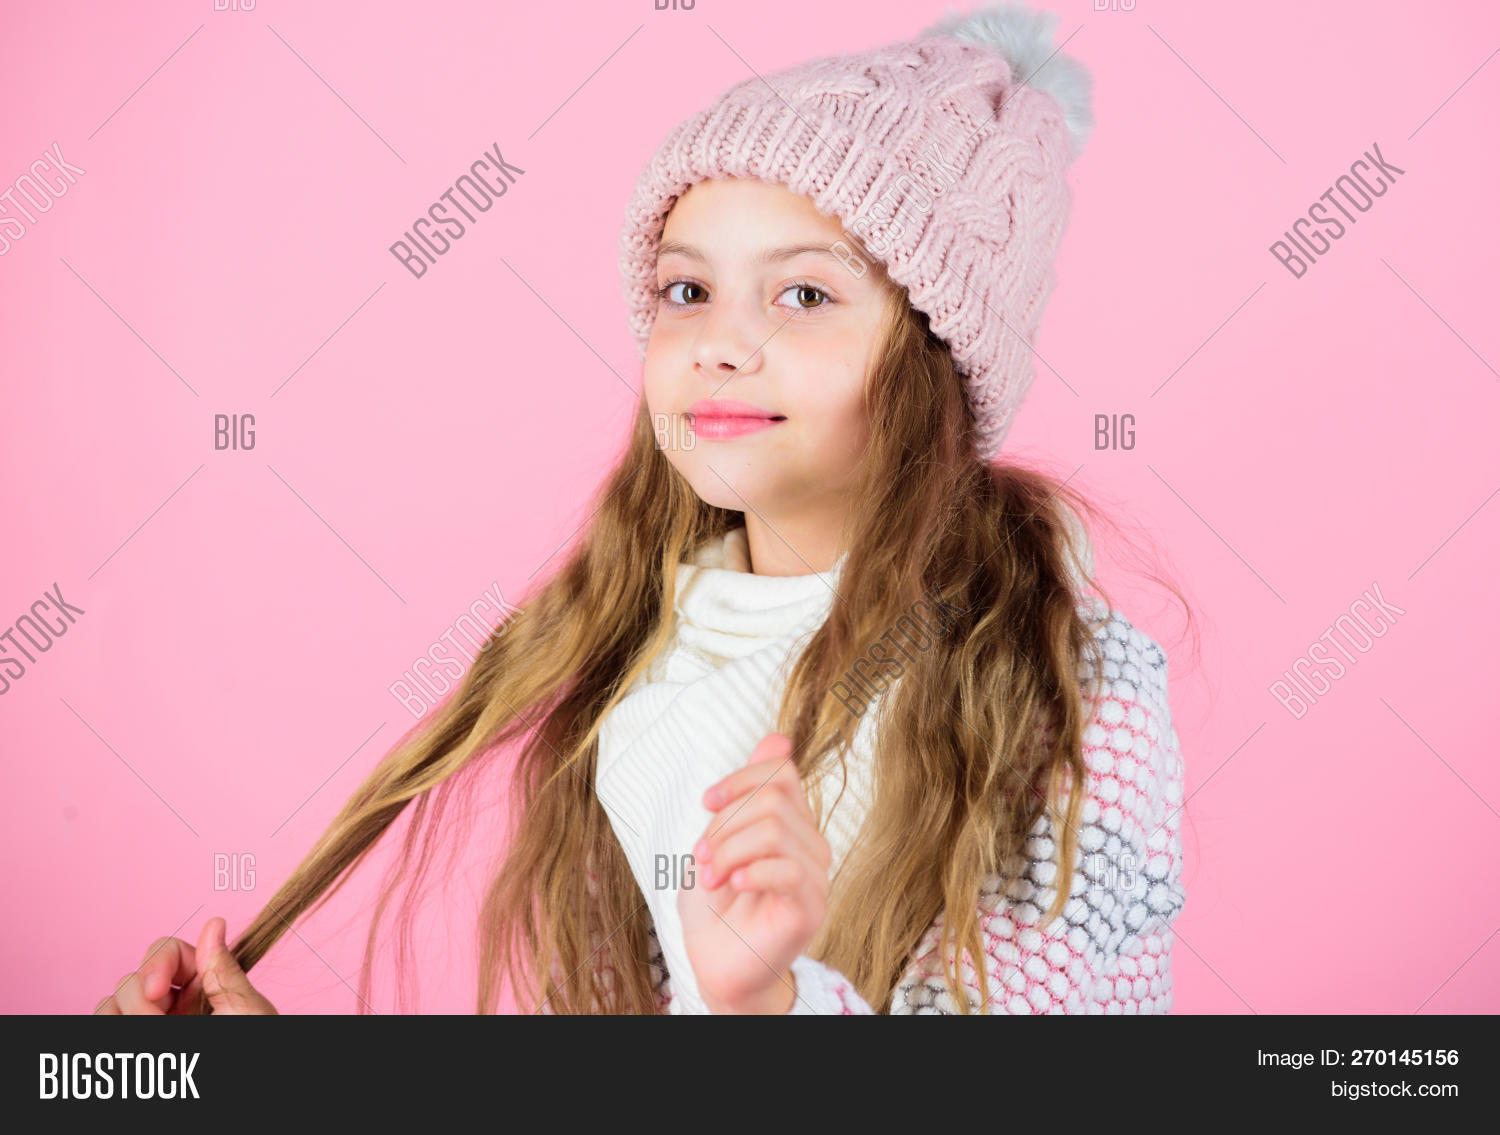 fe4a0cf602e Girl Wear Knitted Hat Pink Background. Prevent Winter Hair Damage. Winter  Hair Care Tips